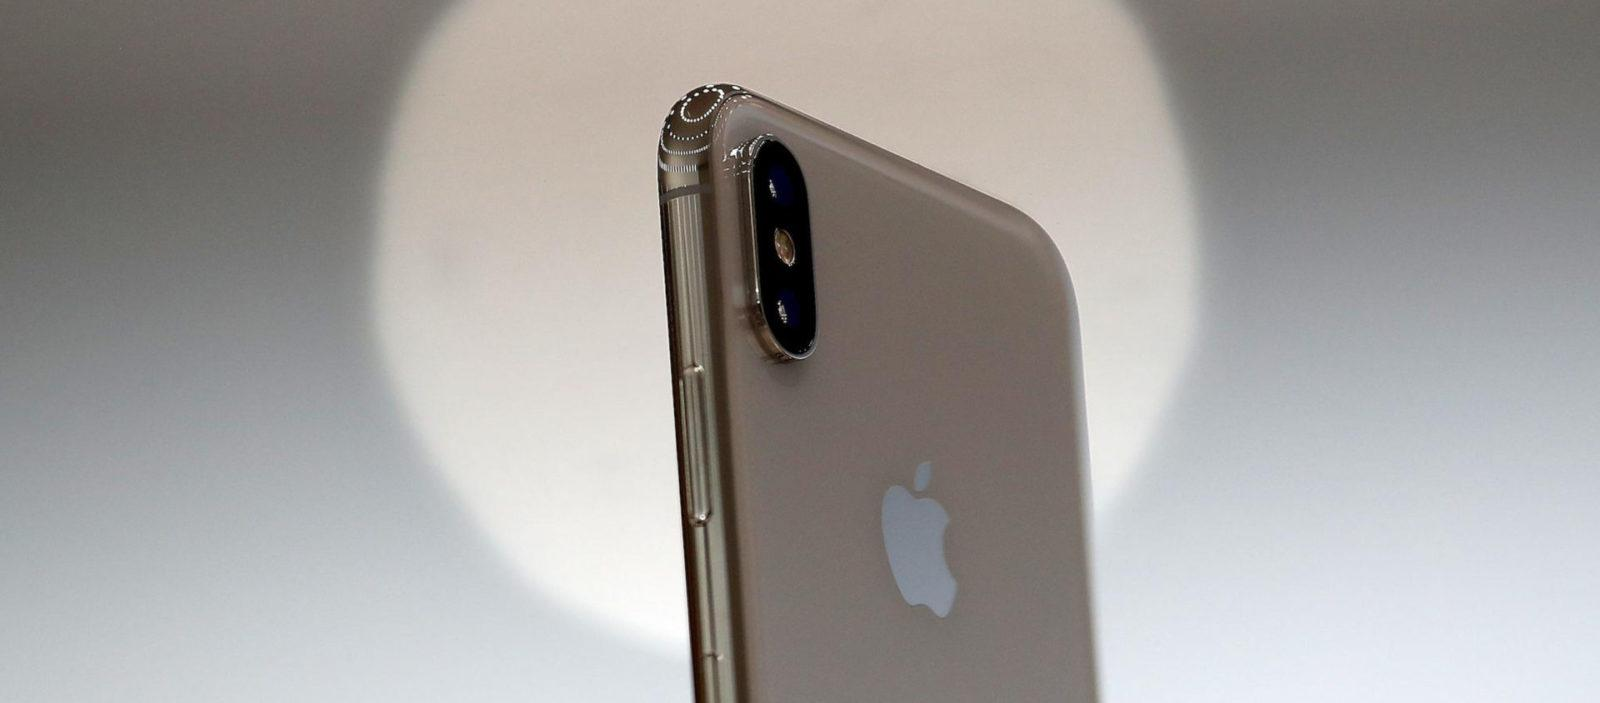 Ecco i primi render di iPhone XS e XS Plus!